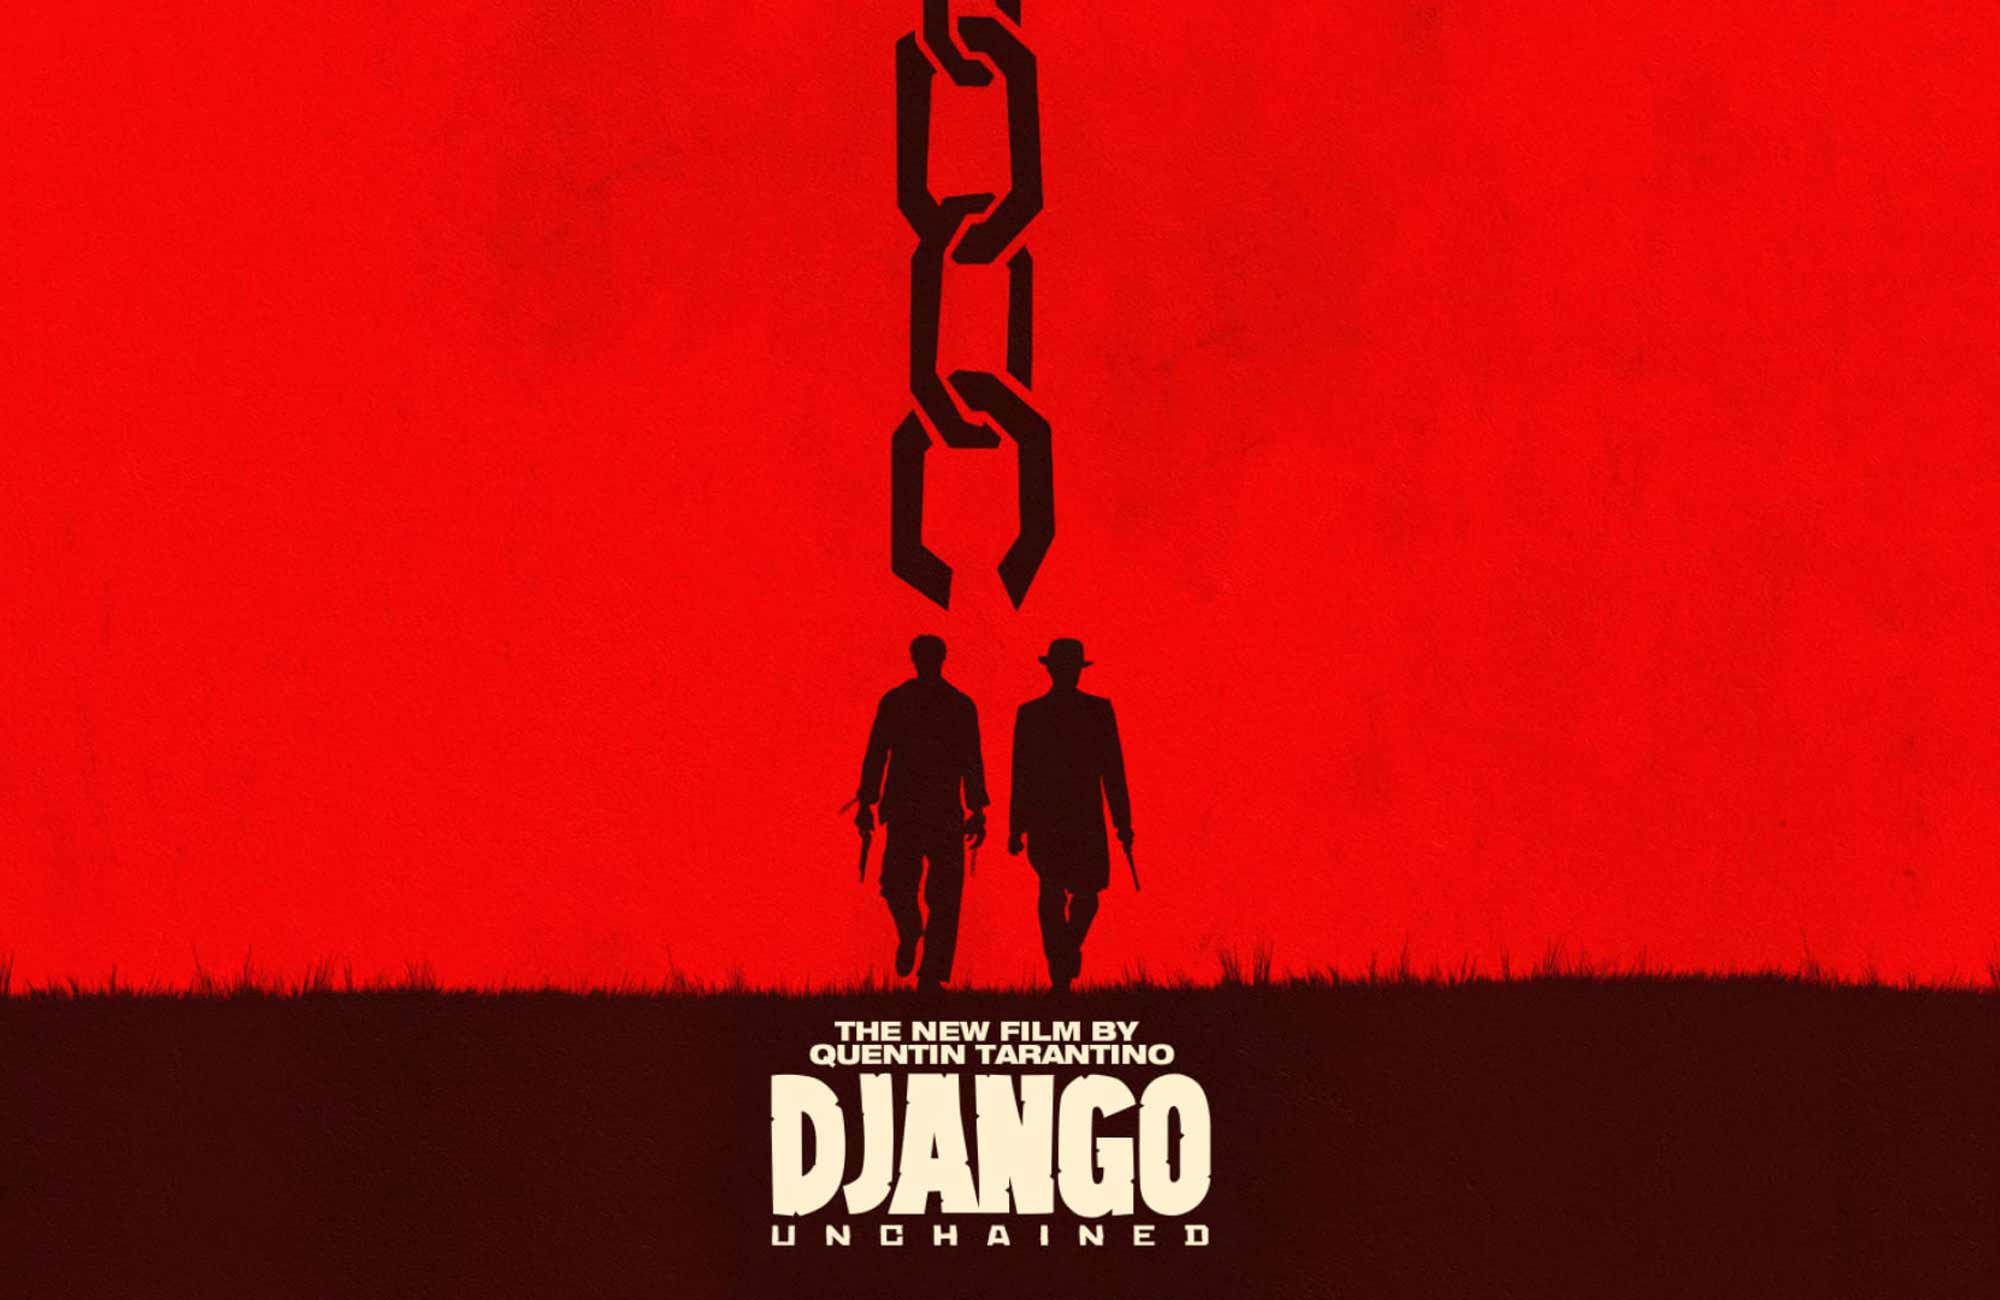 Brian Trenchard-Smith on Django Unchained